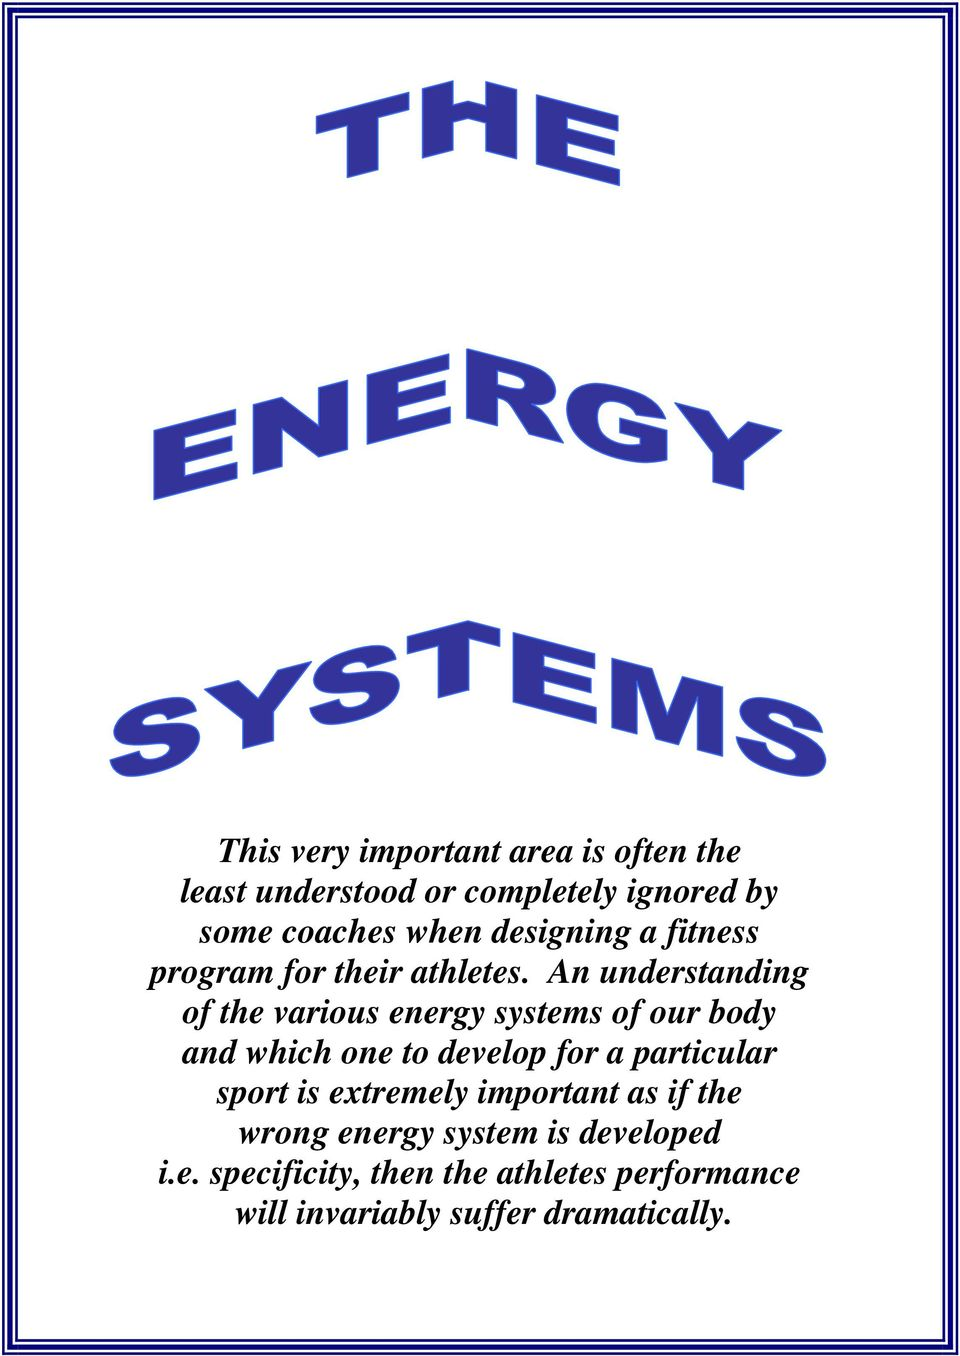 An understanding of the various energy systems of our body and which one to develop for a particular